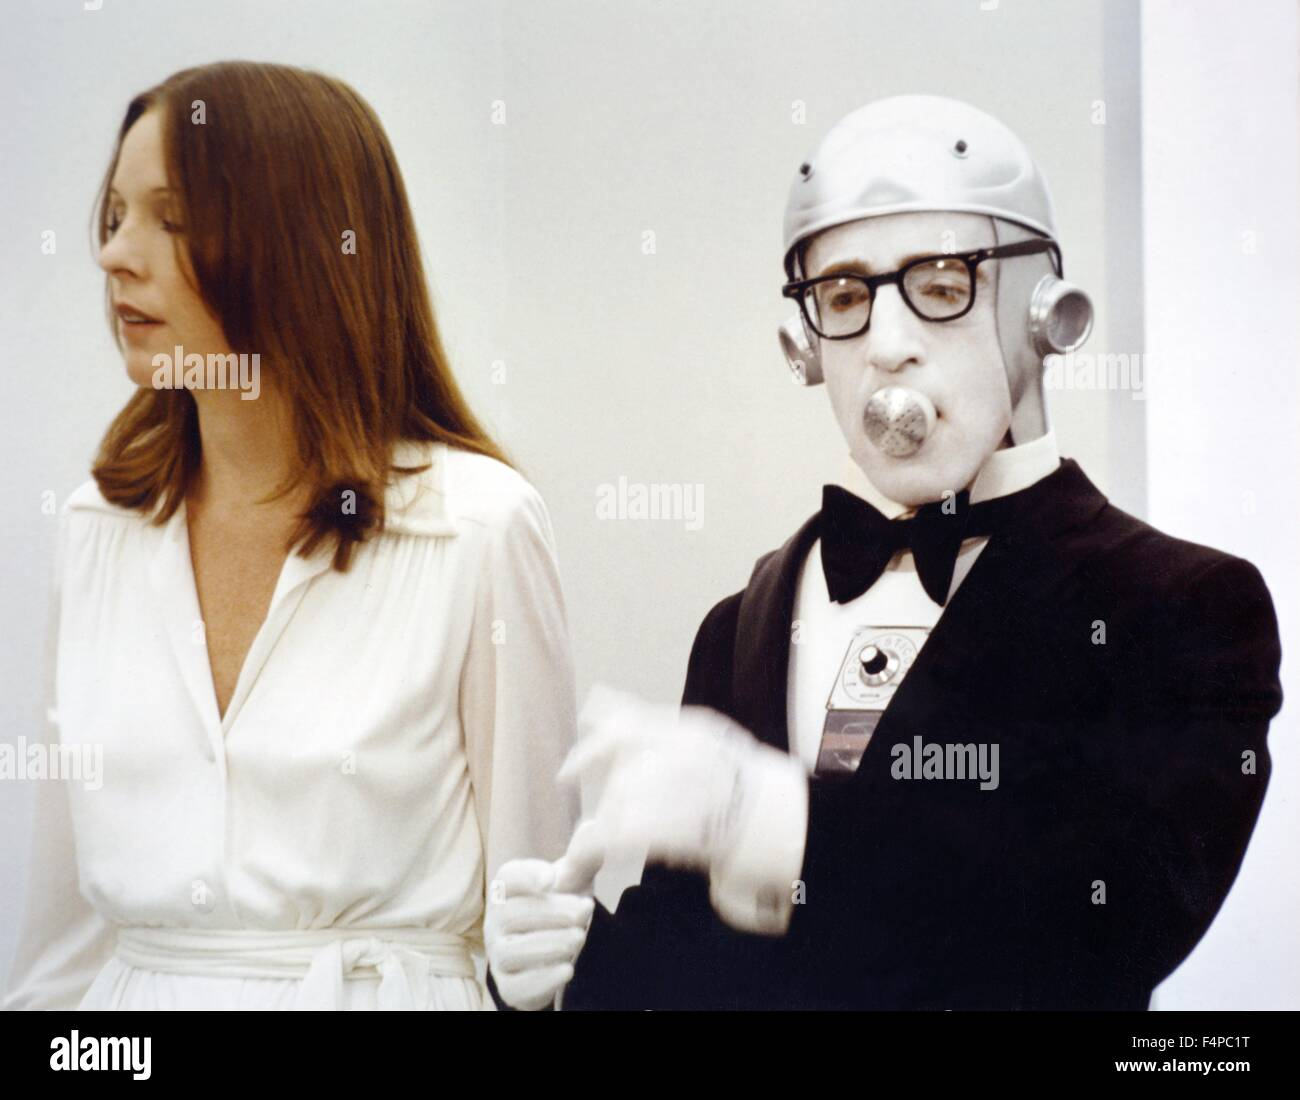 Diane Keaton, Woody Allen / Sleeper 1973 directed by Woody Allen - Stock Image